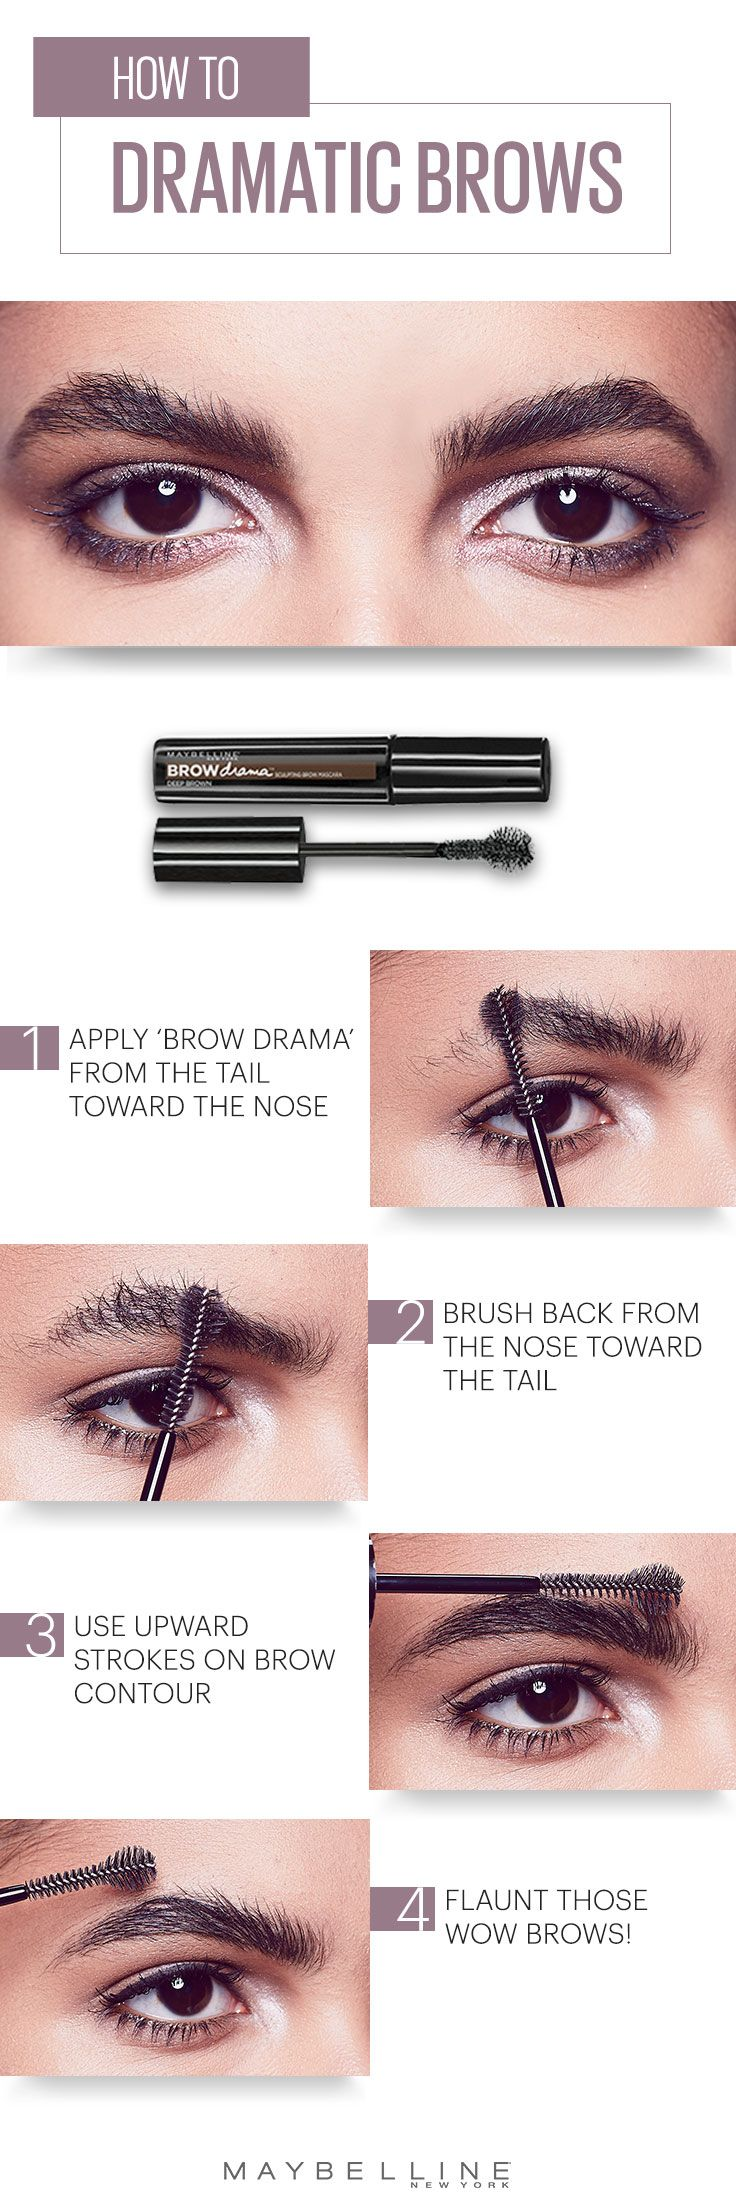 Listen up, ladies! Here's an insider tip on eyebrow shaping—bold, full brows are the way to roll. Check out this tutorial and get in on how to go from brow to wow with Maybelline Brow Drama sculpting mascara.